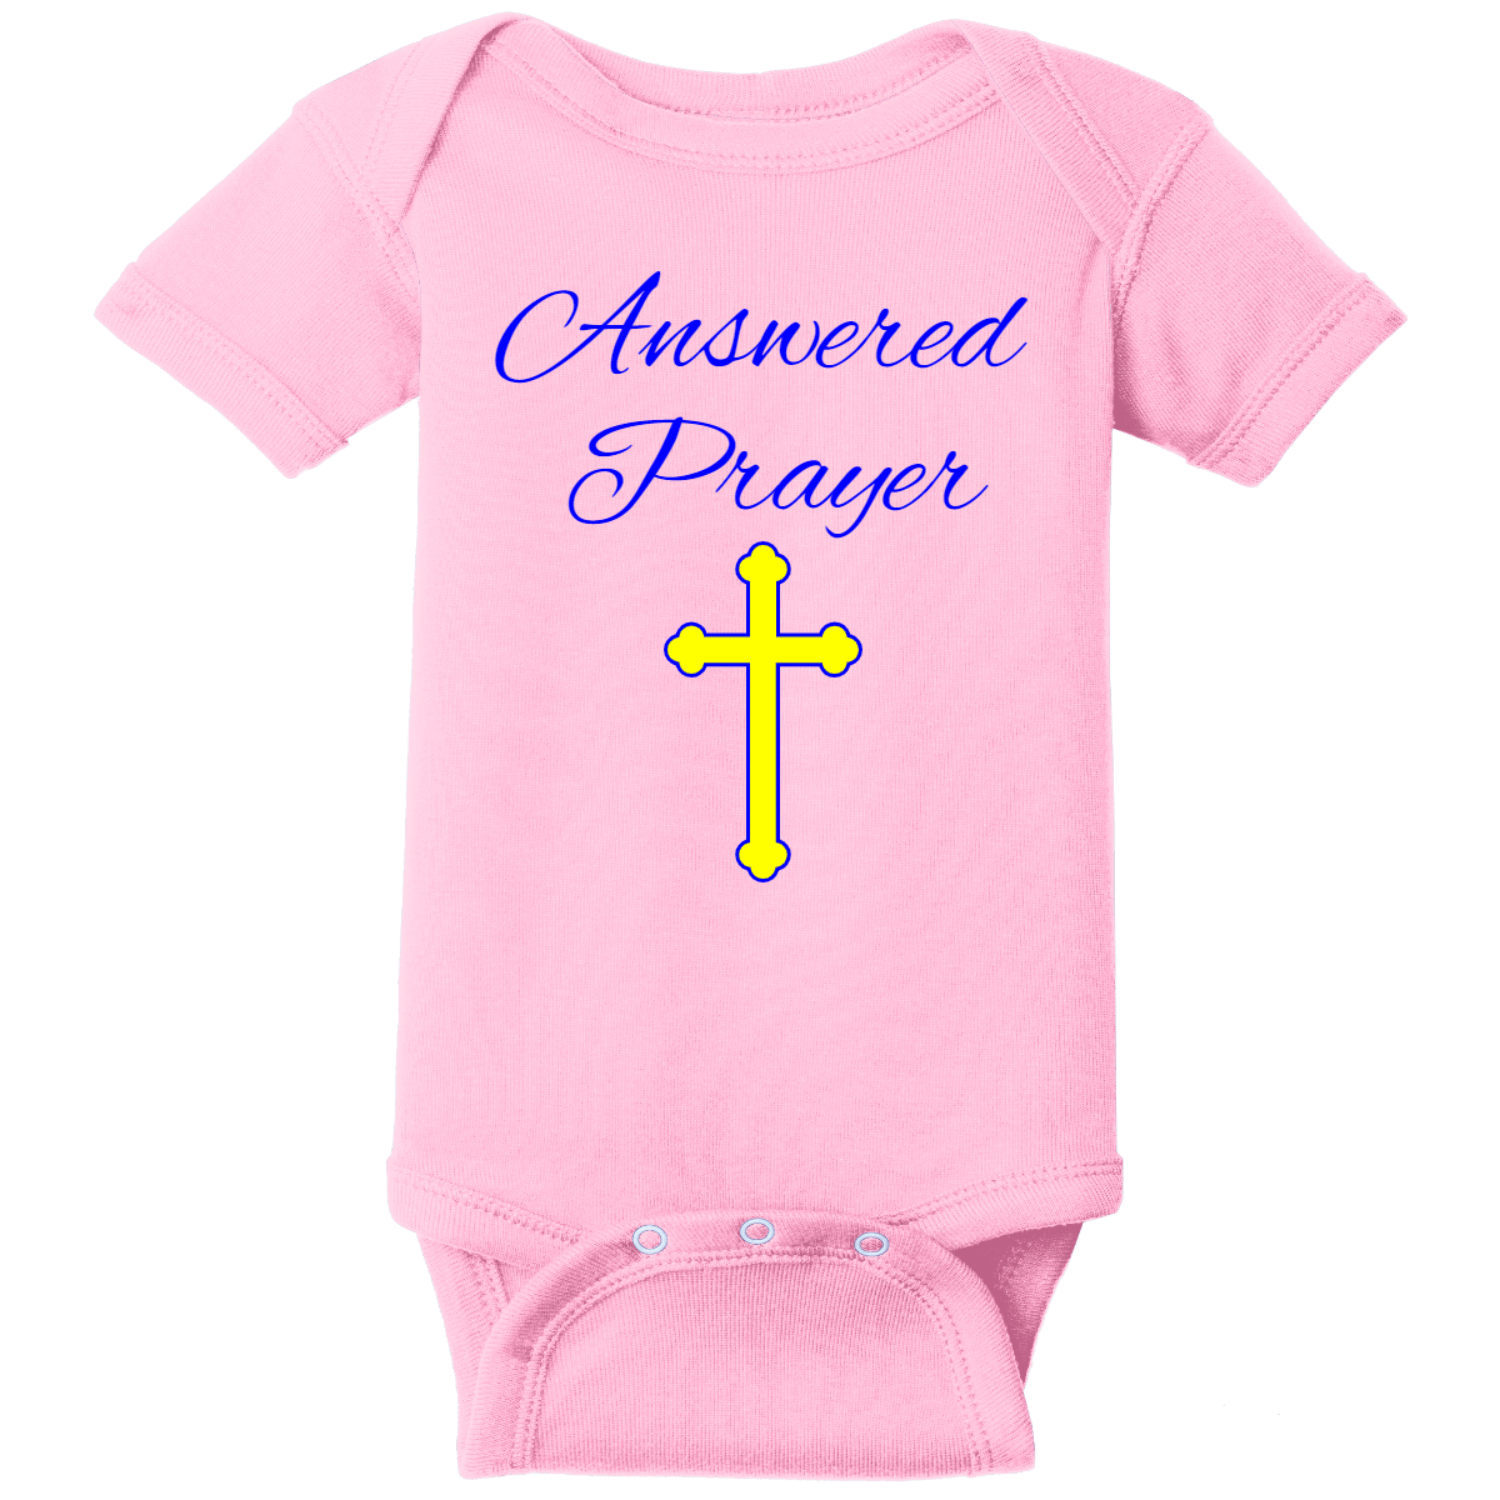 Prayer Answered Infant Onsie Pink Rabbit Skins Infant Short Sleeve Infant Rib Bodysuit RS4400